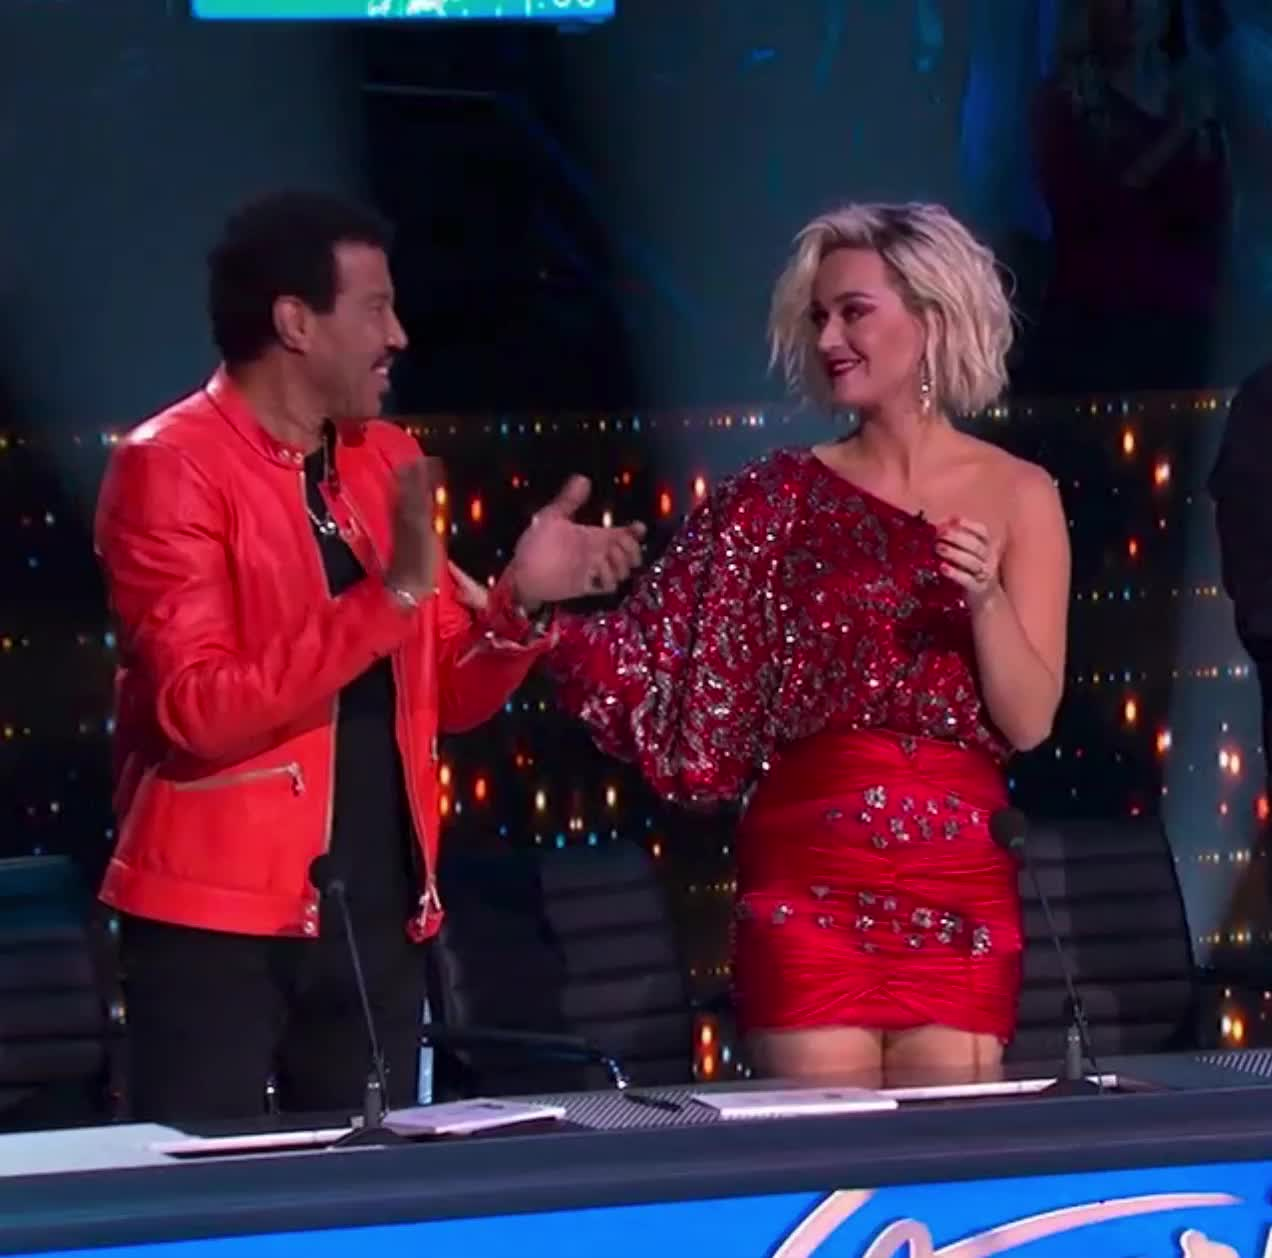 american idol, american idol season 17, americanidol, high five, katy perry, lionel richie, luke bryan, ryan seacrest, season 17, American Idol Katy Lionel High Five GIFs